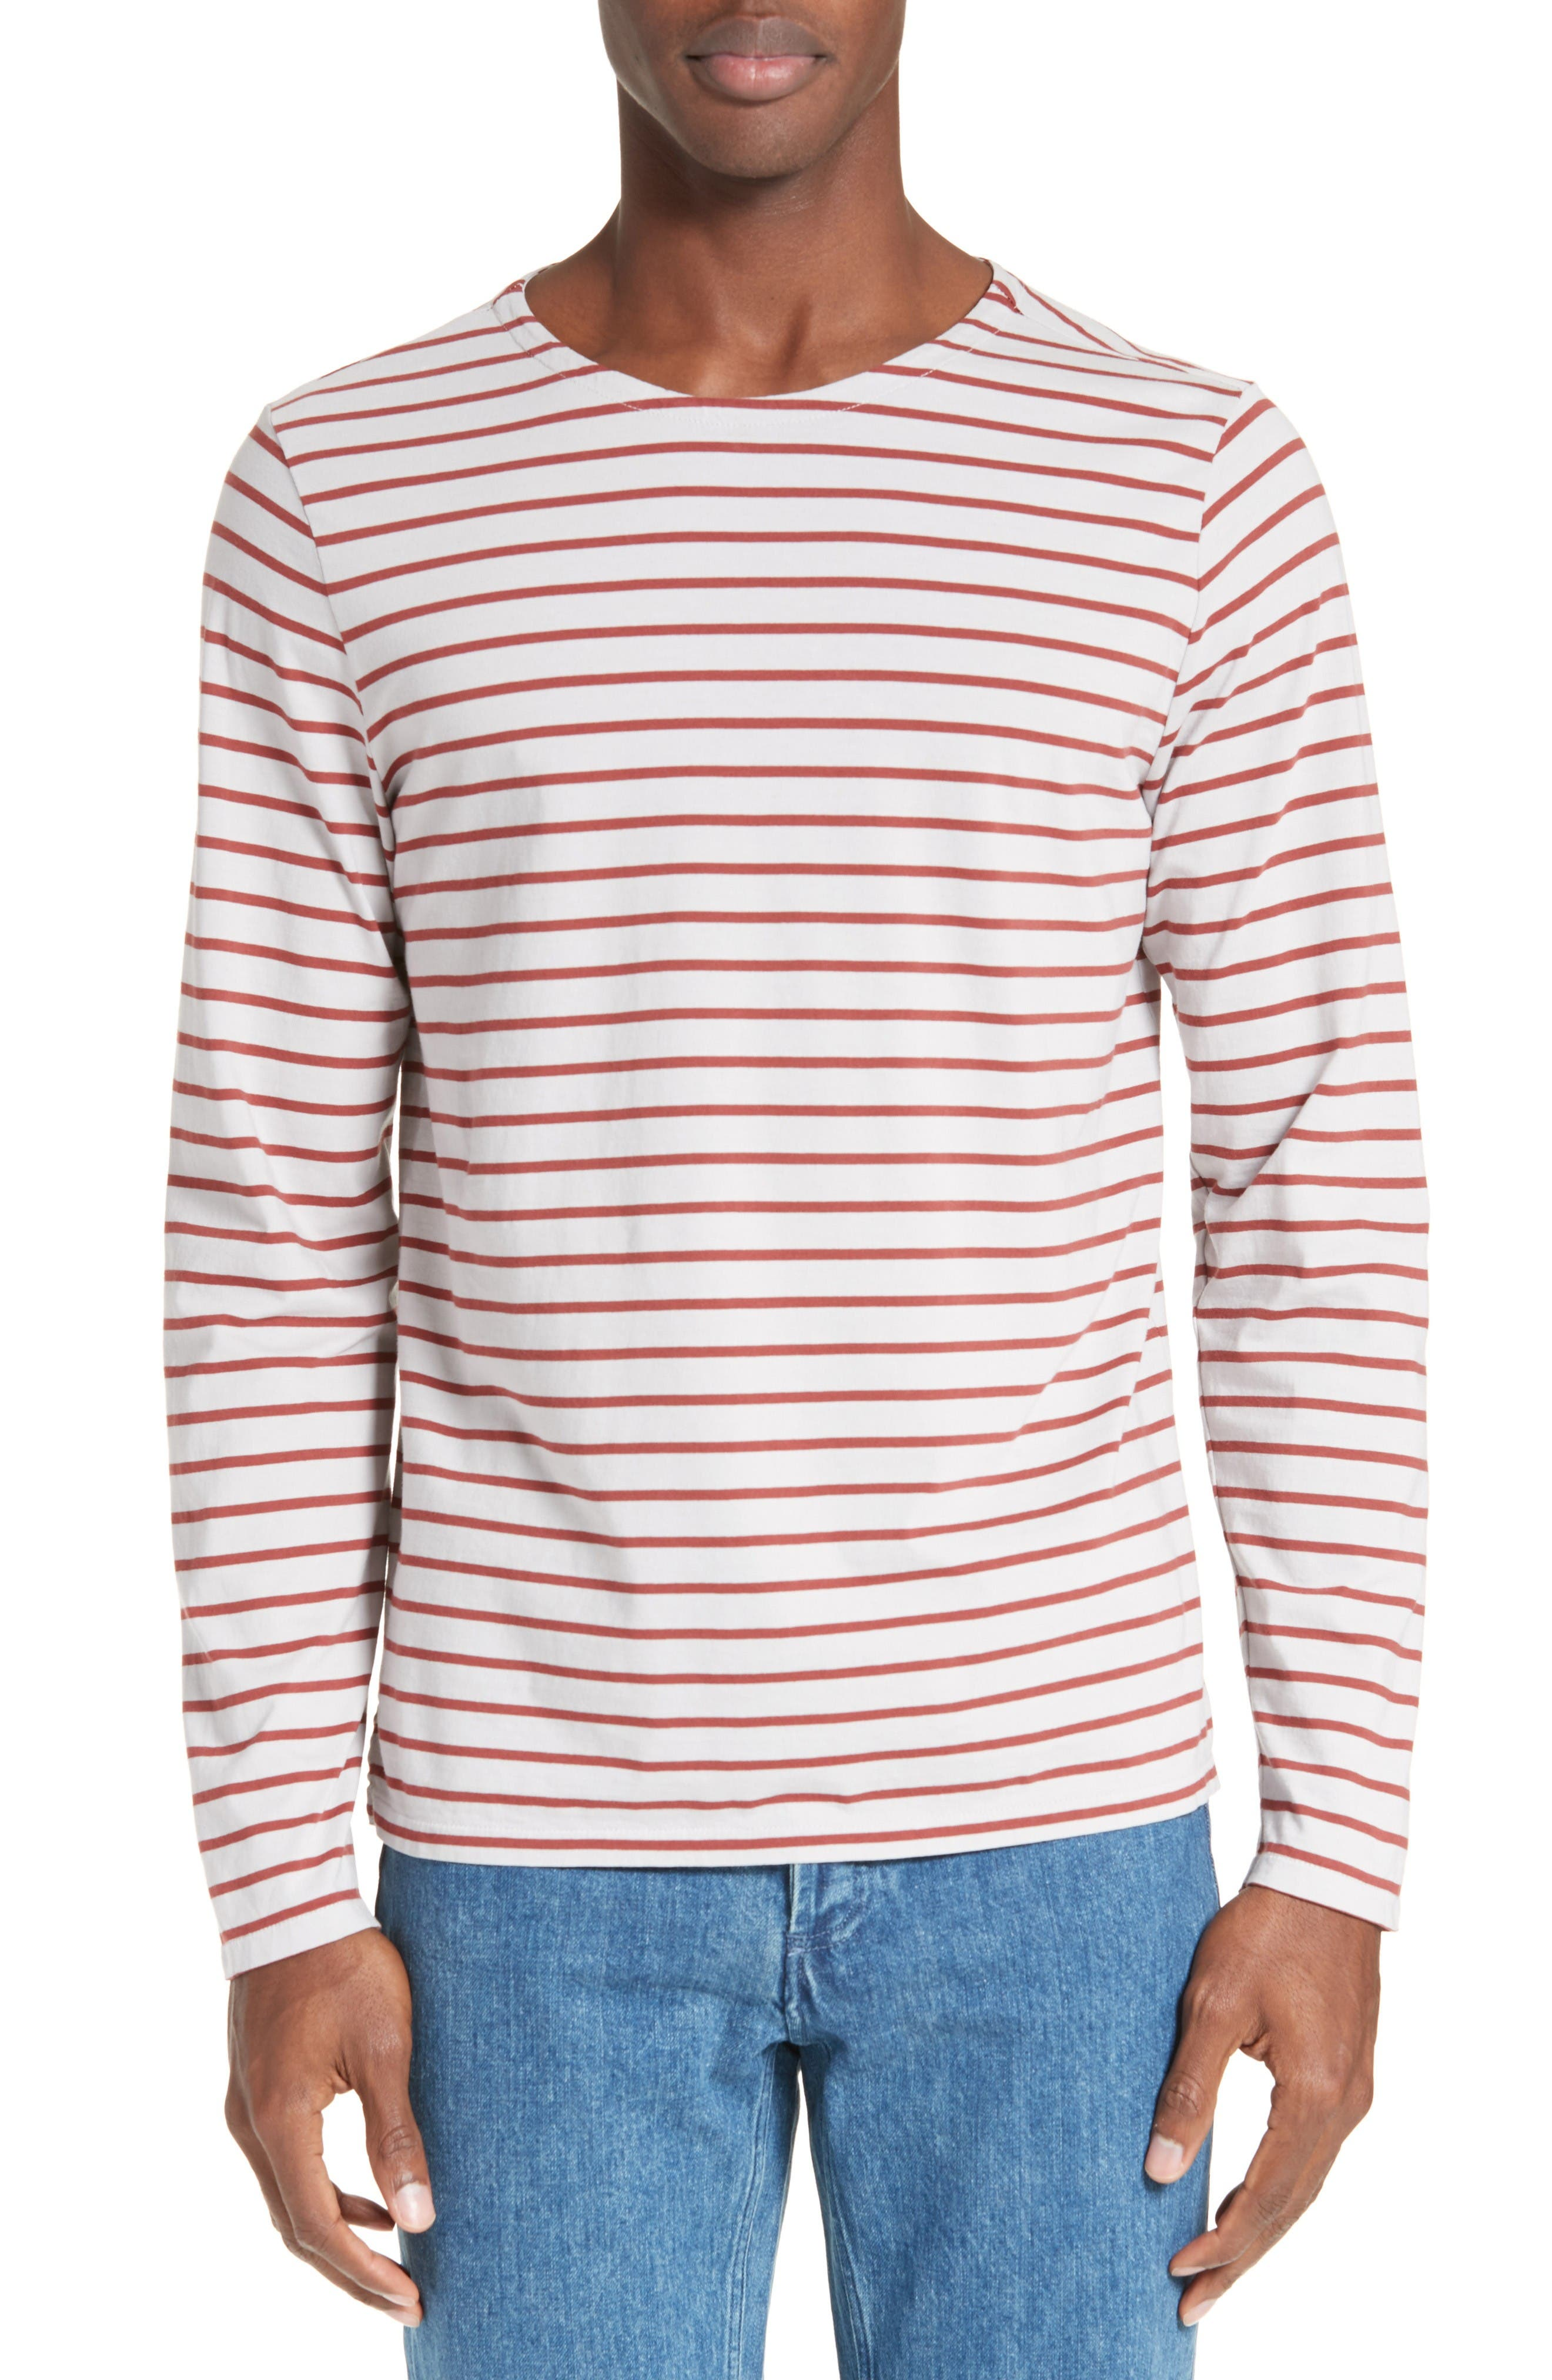 A.P.C. Joey Stripe Long Sleeve T-Shirt